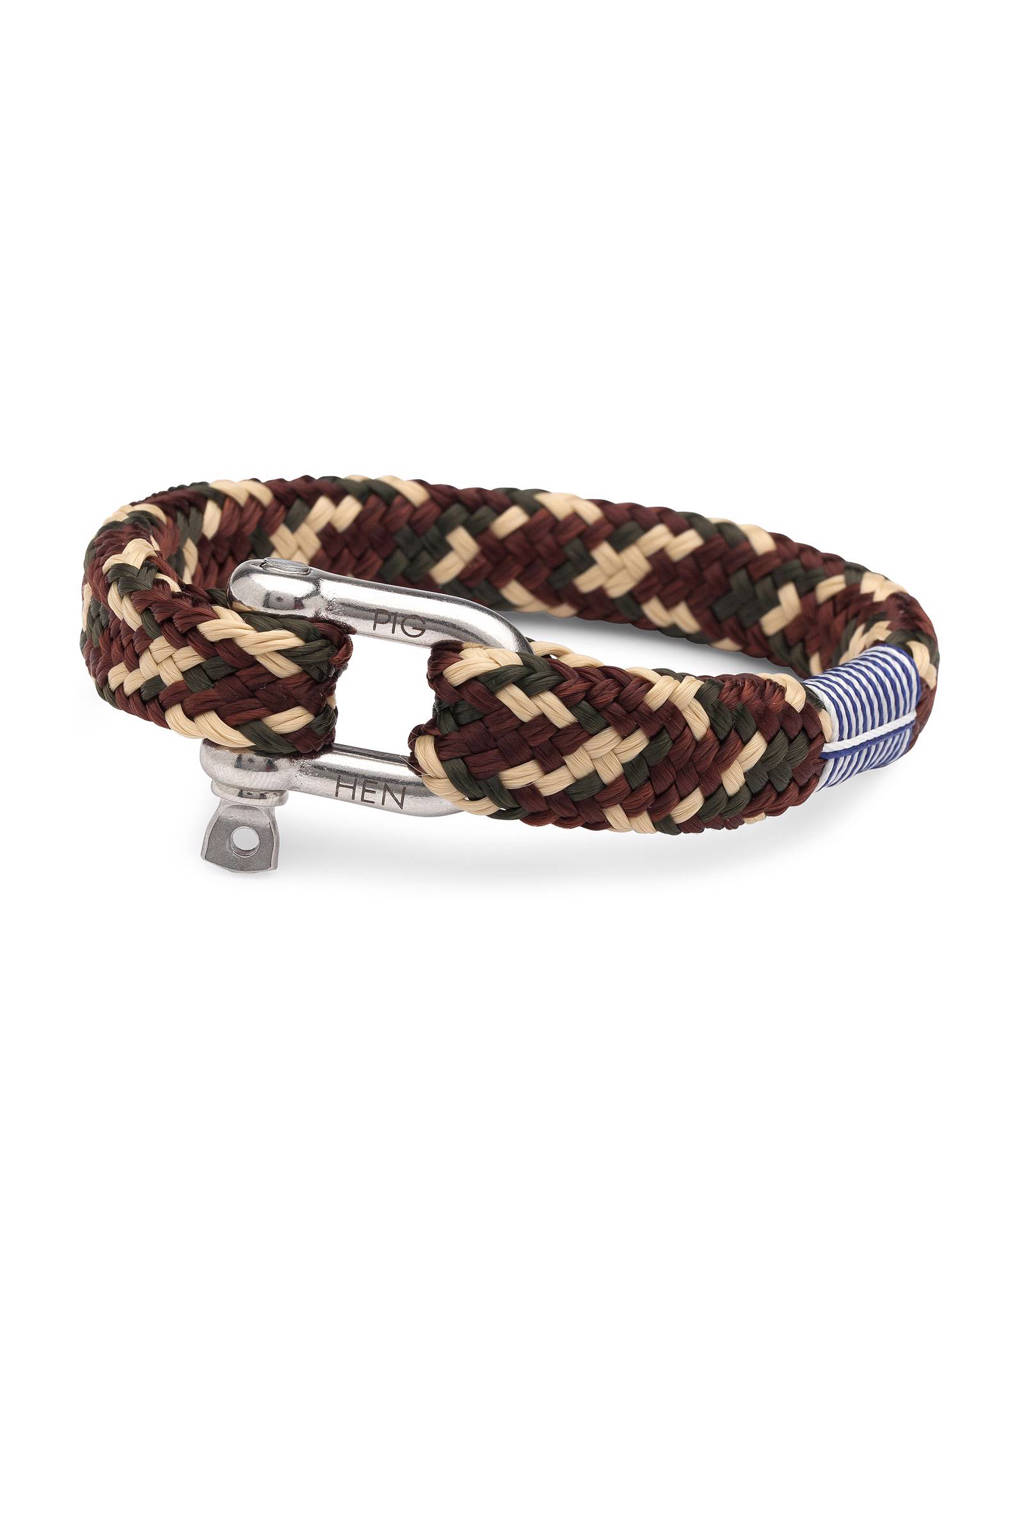 Pig & Hen armband Gorgeous George, Army/brown/sand /camo